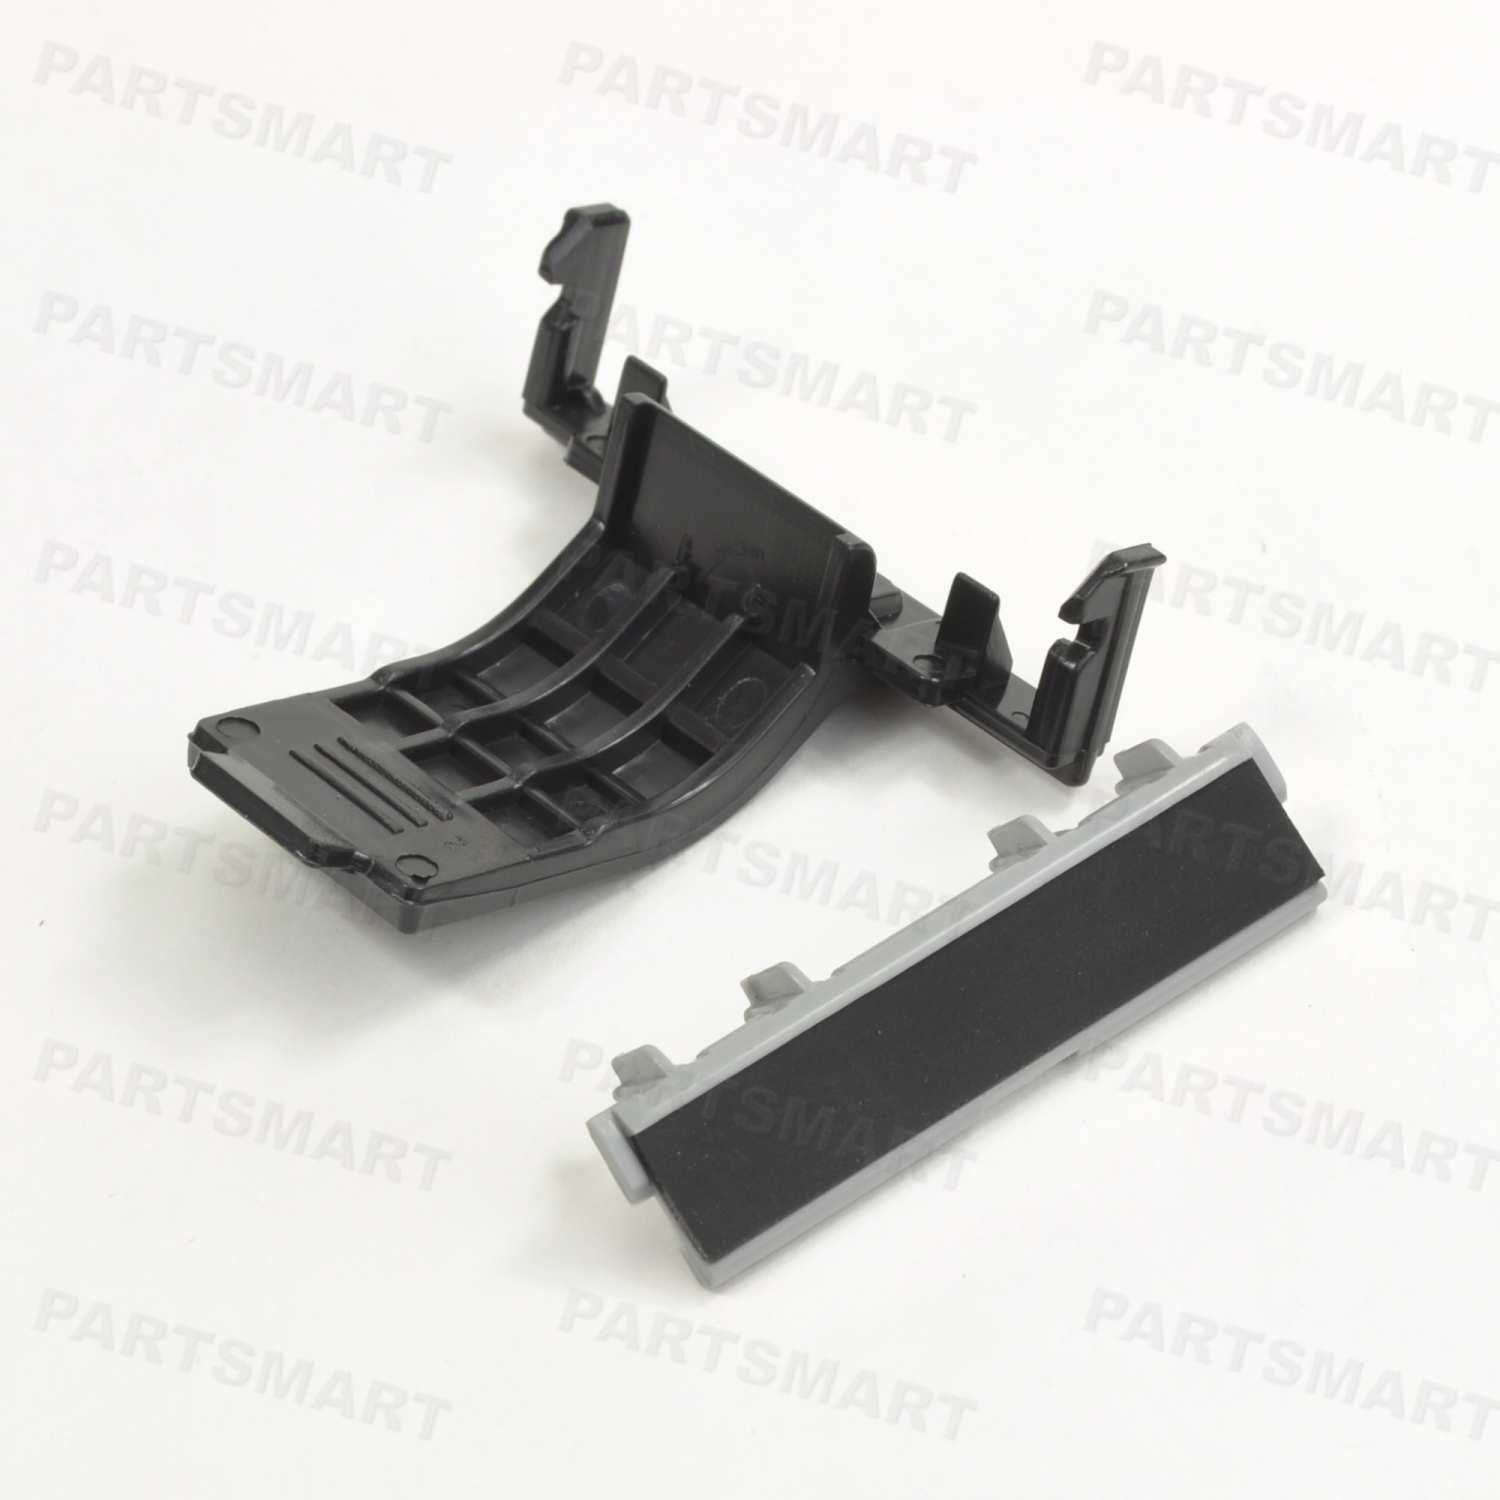 RM1-6163-000 Sep Pad Kit, Tray 1 for HP Color LaserJet CP5225, Color LaserJet CP5525